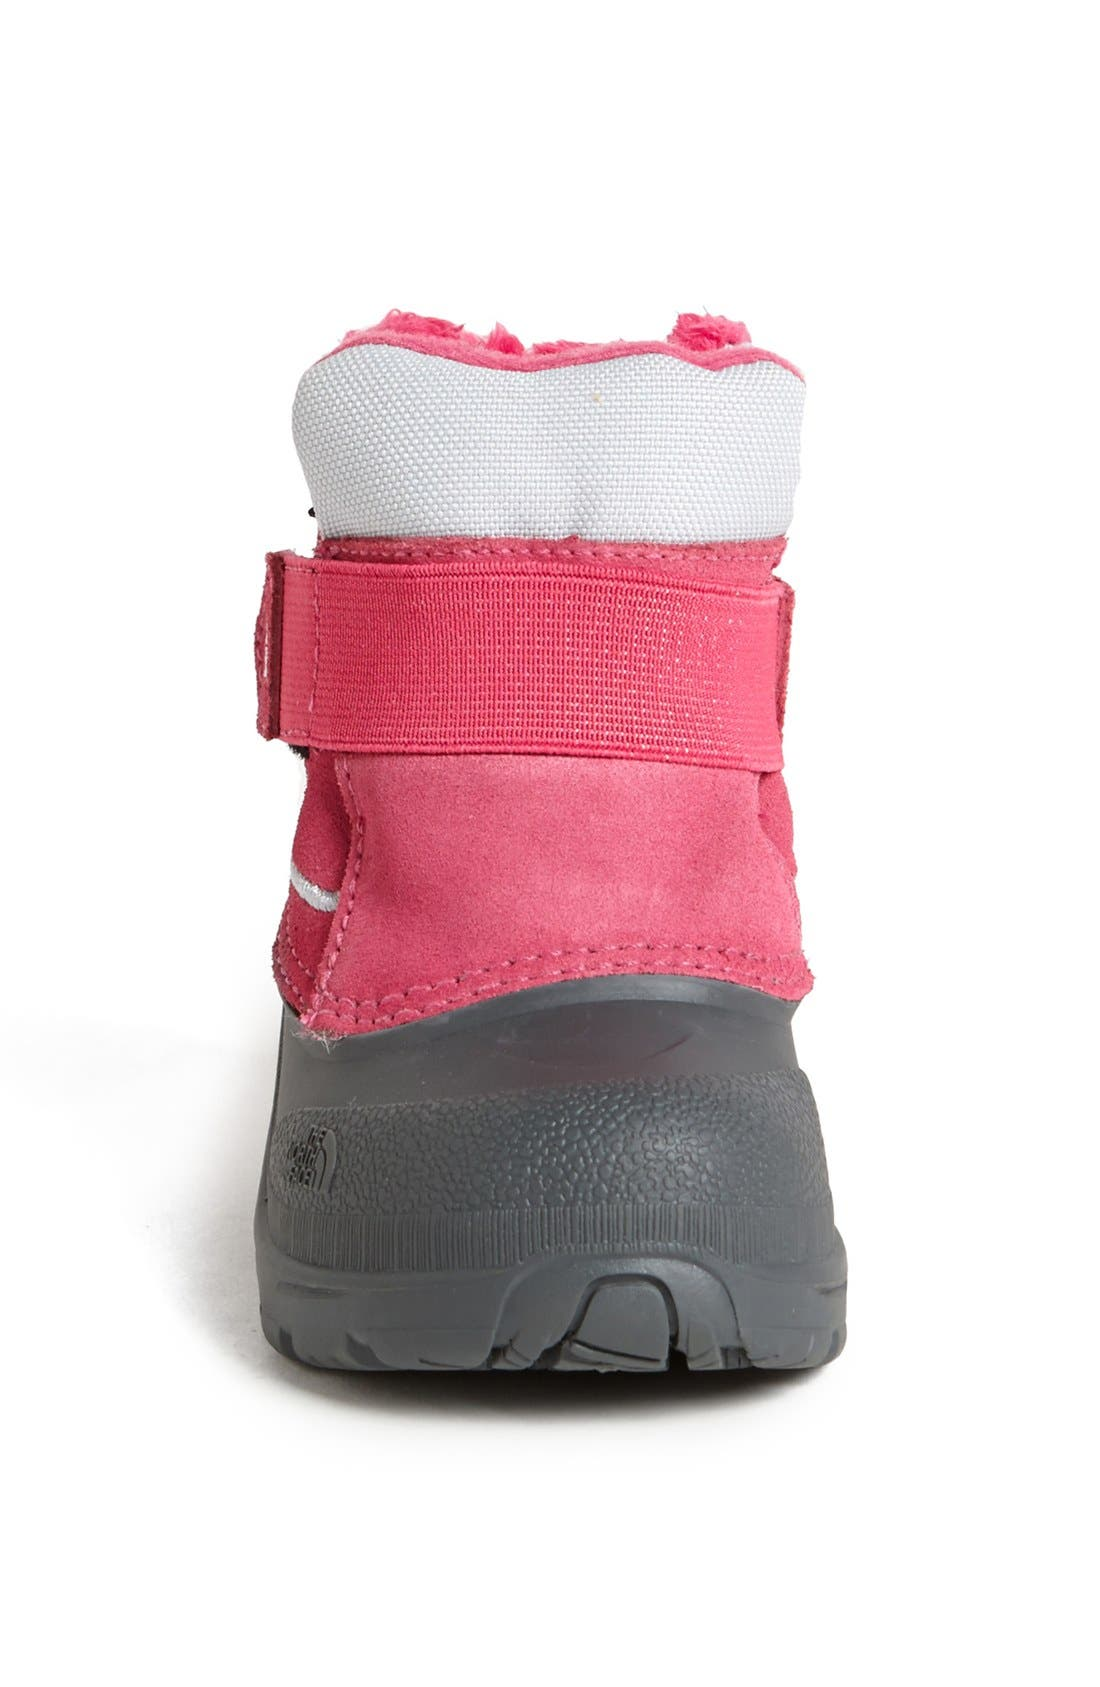 Alternate Image 3  - The North Face 'Powder Hound' Waterproof Snow Boot (Walker & Toddler)